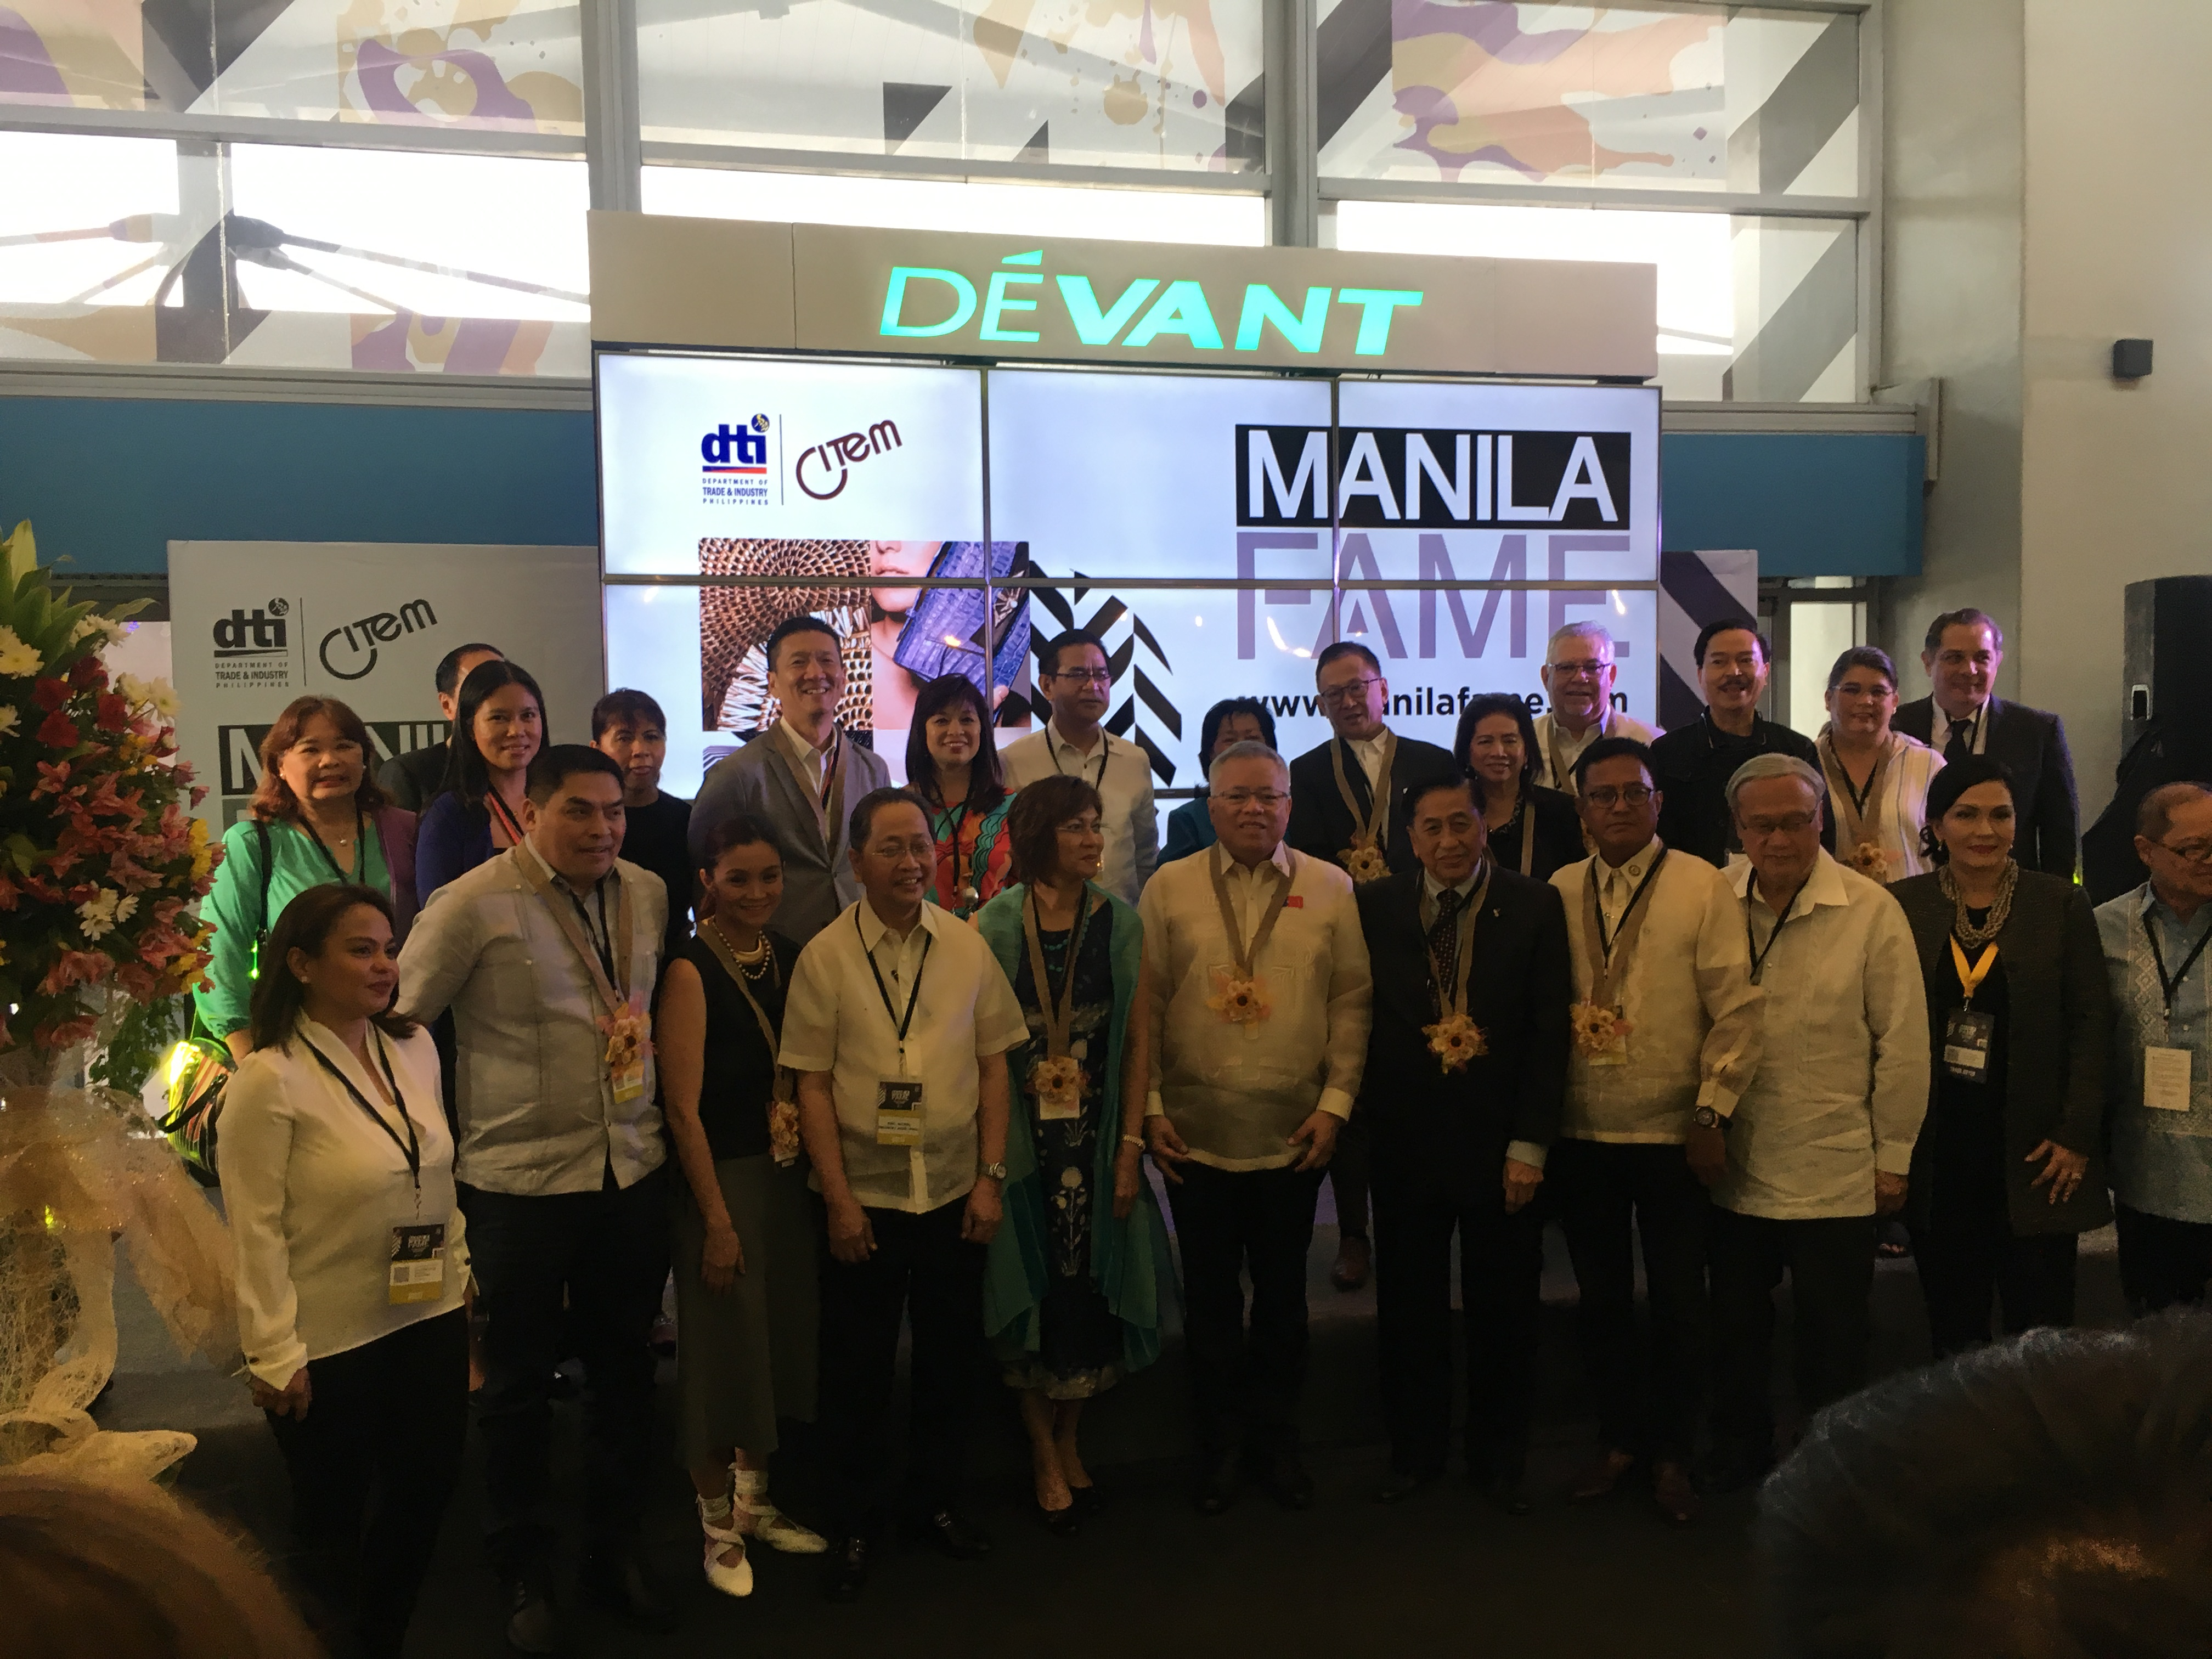 Lt. Gov Chin & Delegation at Manila FAME Trade Exhibition